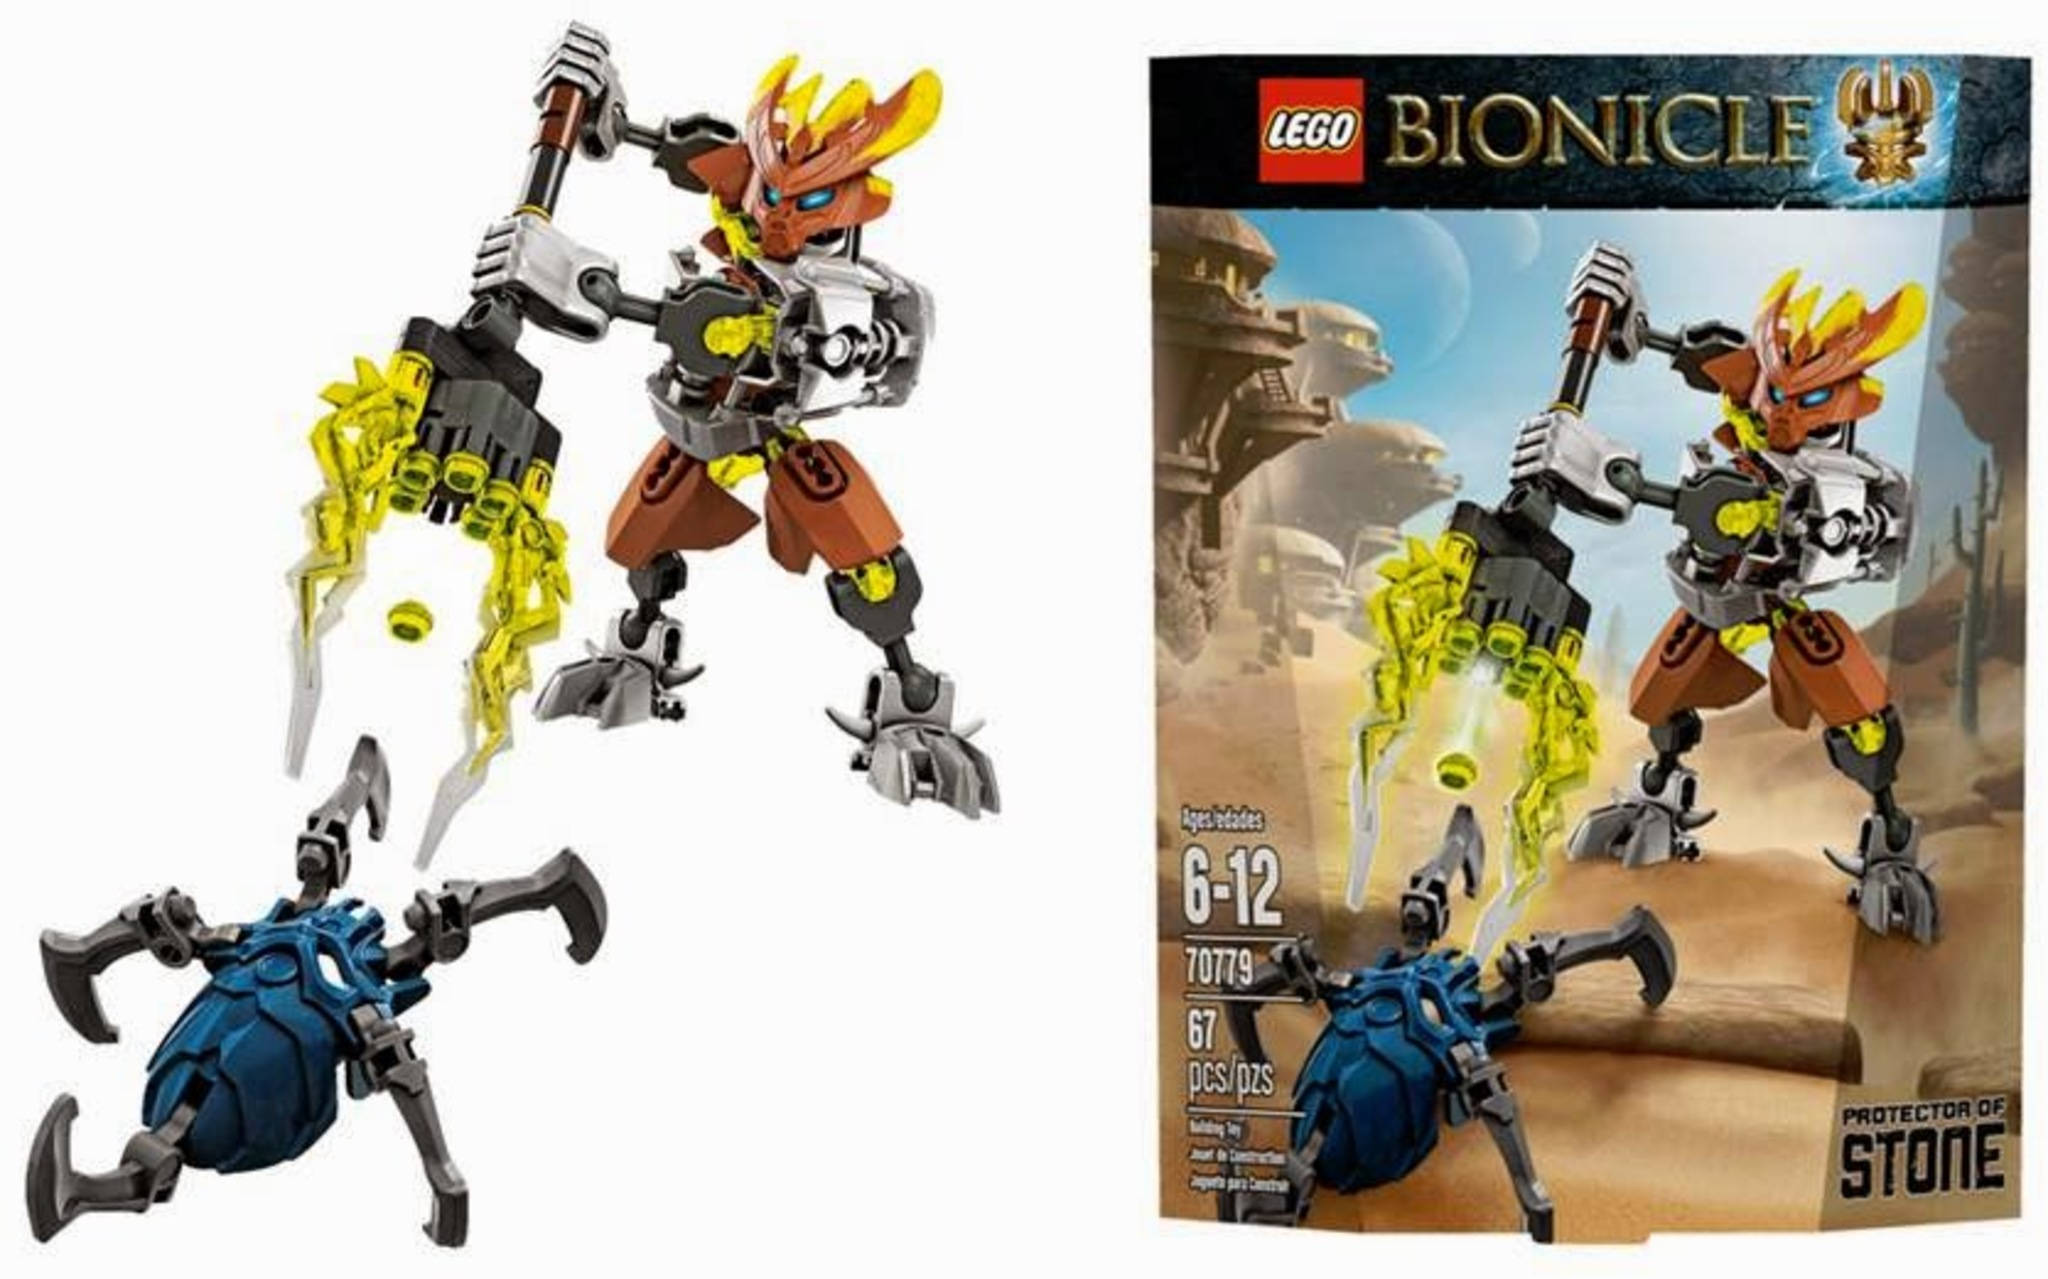 leaflet-cn187 Lego 70779 bionicle protector of stone complete 2015